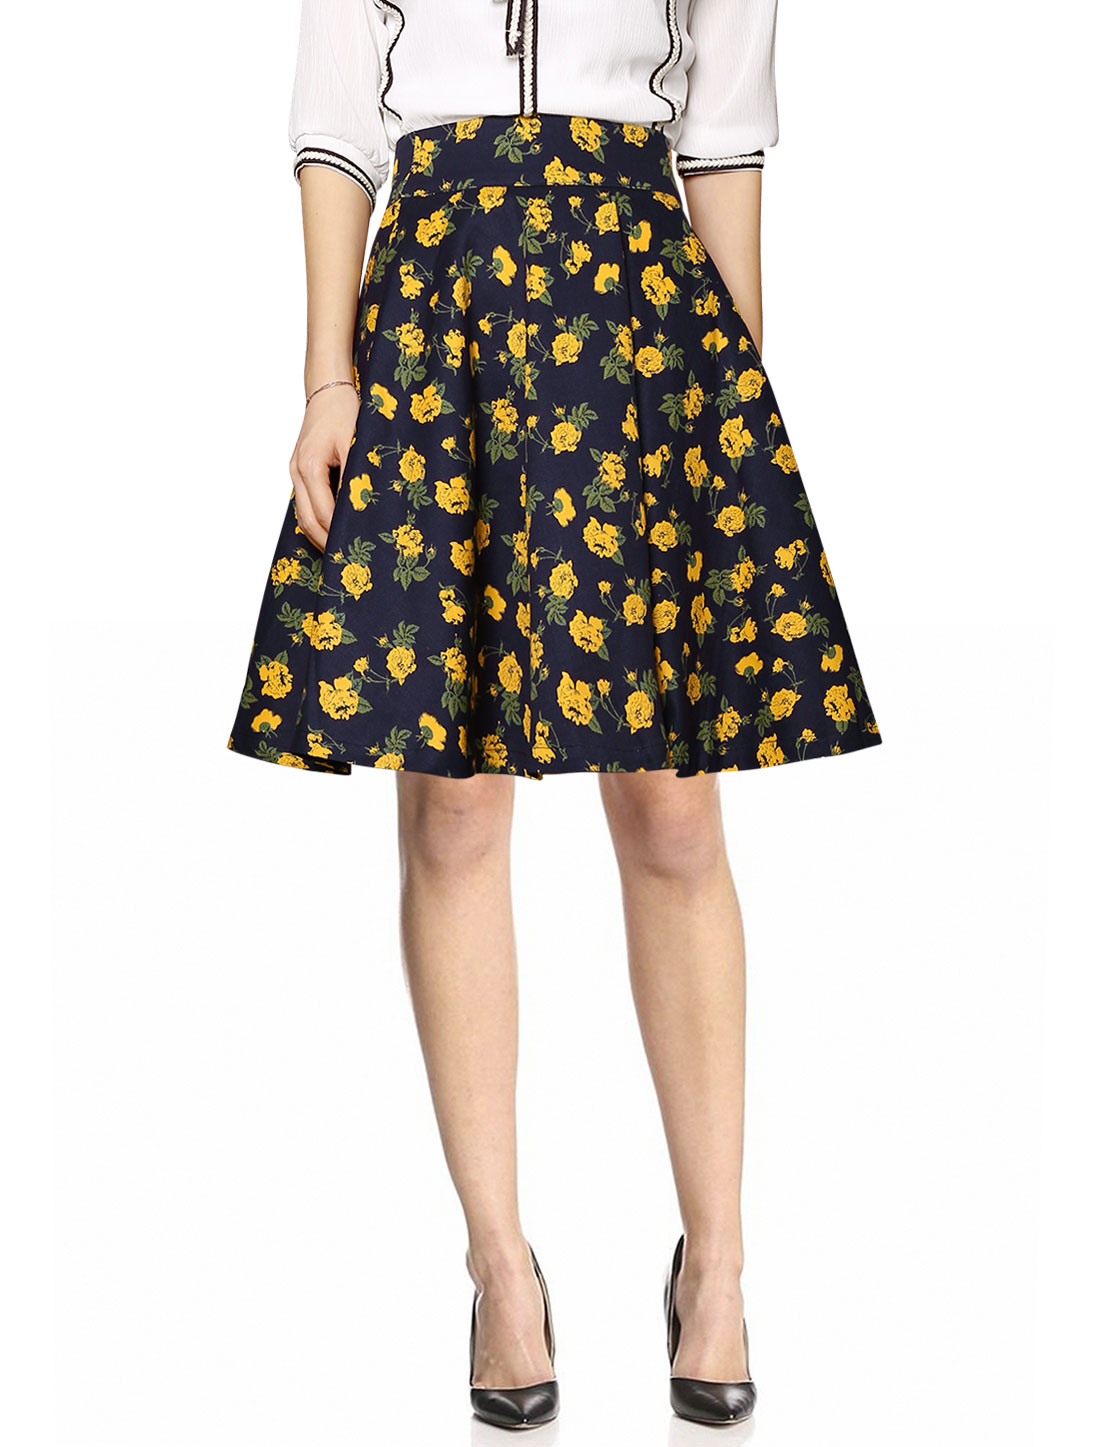 Women High Waisted Above Knee Floral Skirts Navy Blue Yellow S